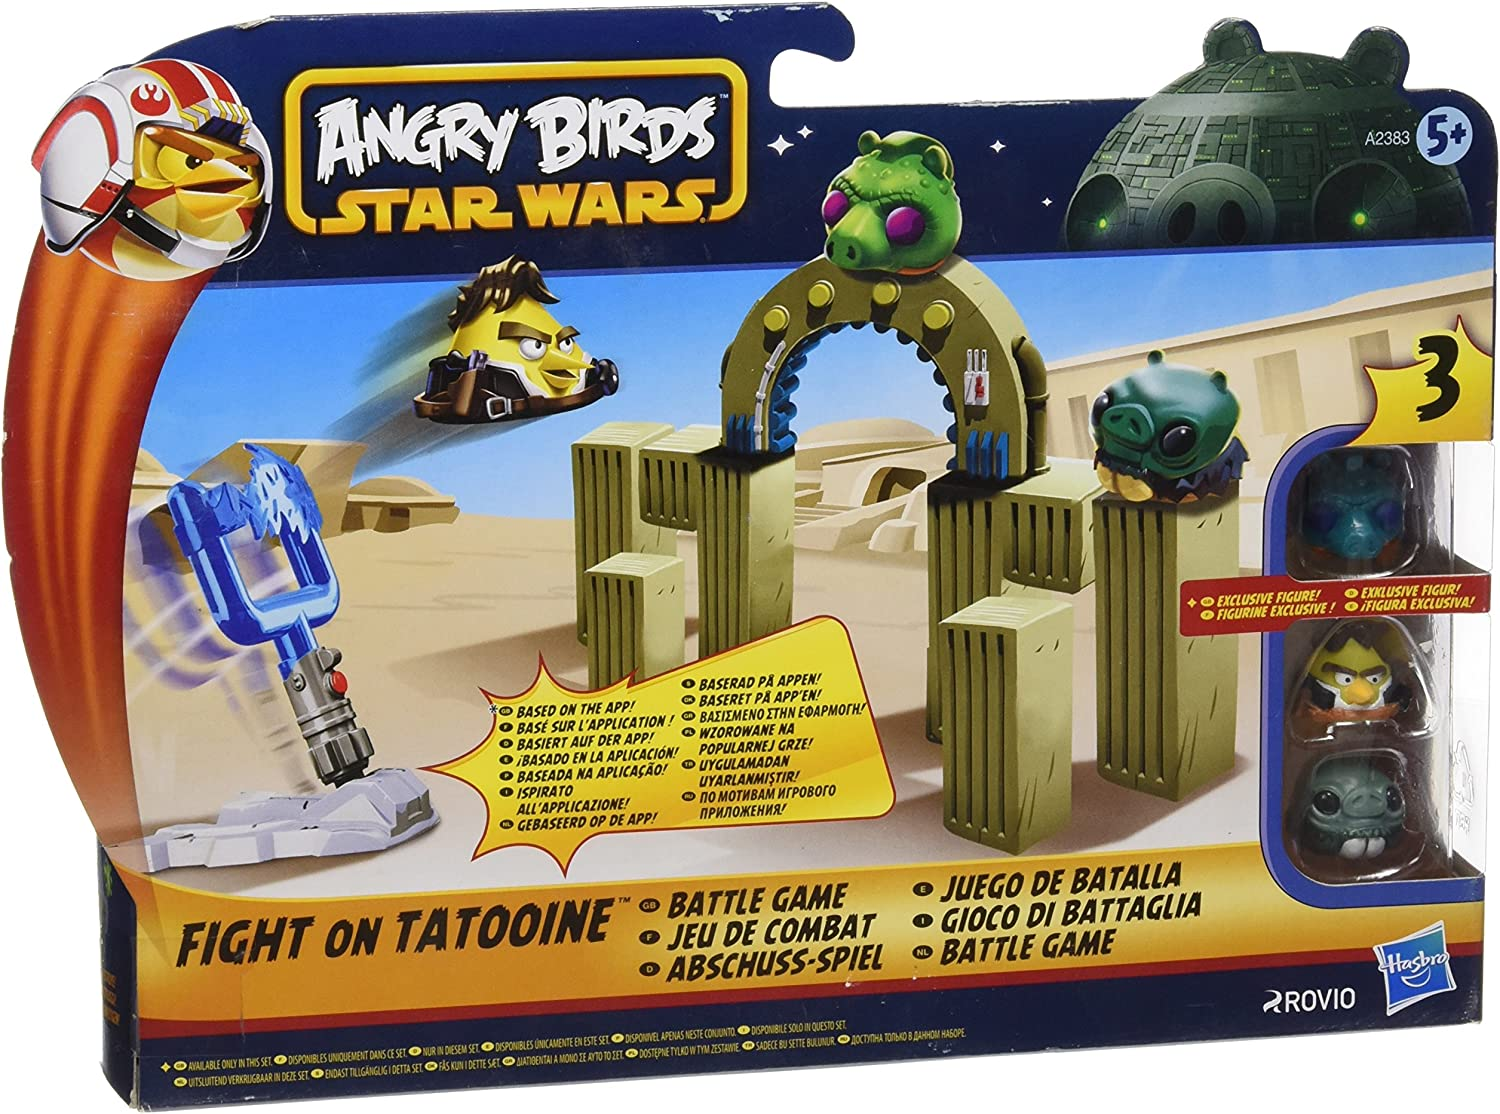 Star Wars Angry Birds - Juego de batalla, surtido: modelos aleatorios (Fight on Tatooine, Jabba's Palace, Darth Vader's Lightsaber)